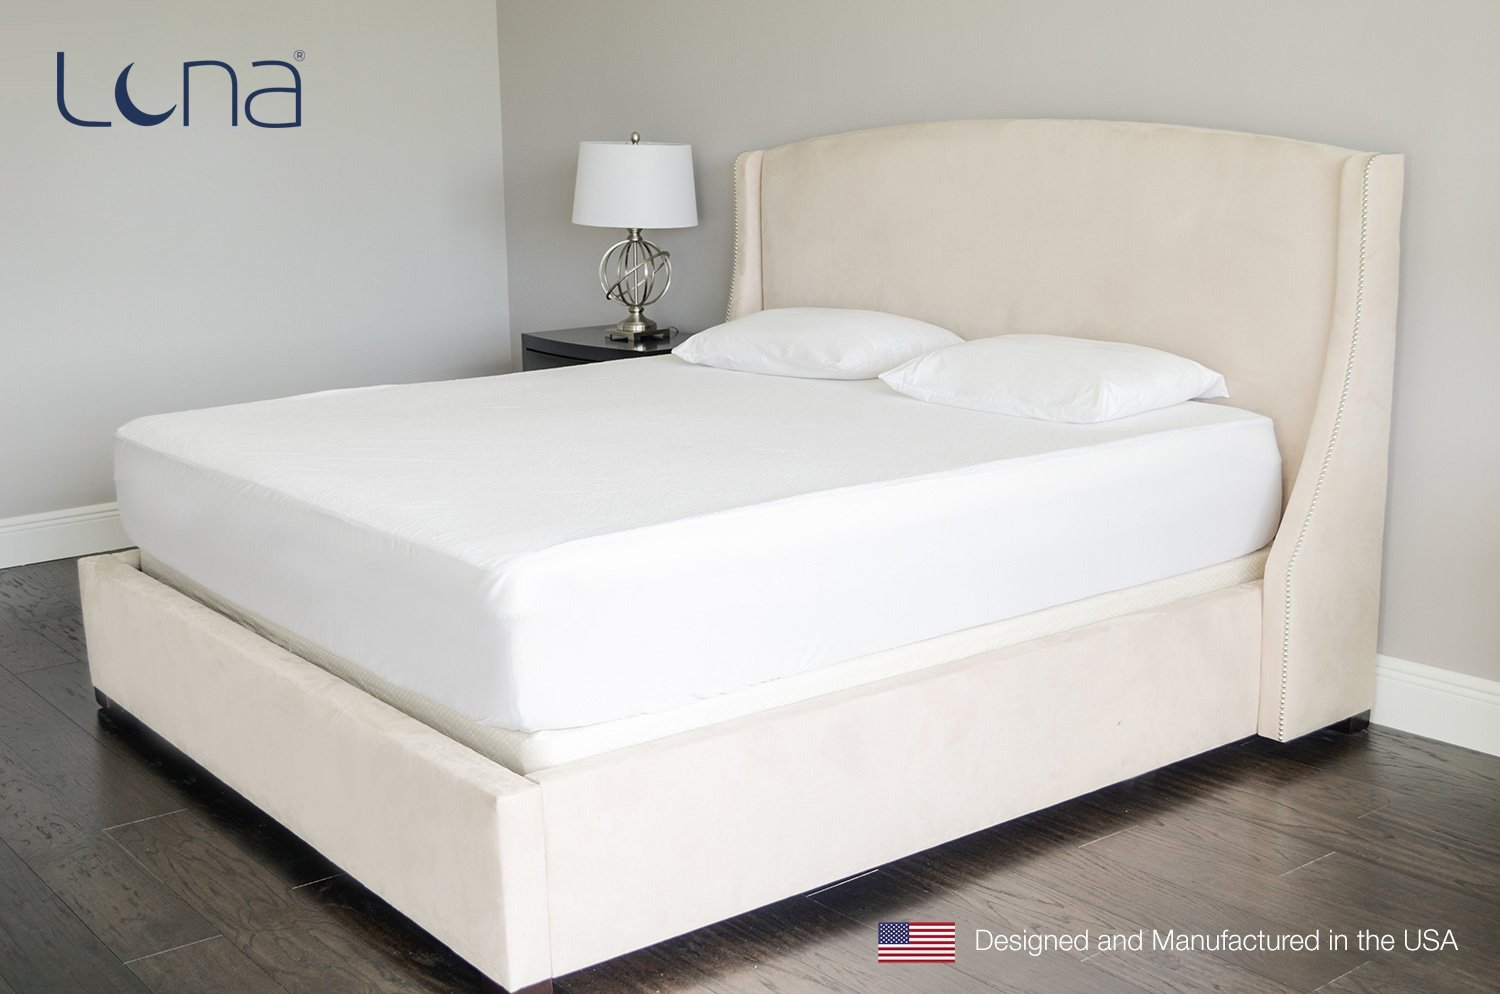 Queen Size Luna Premium Hypoallergenic 100% Waterproof Mattress Protector - Made in the USA - Vinyl Free